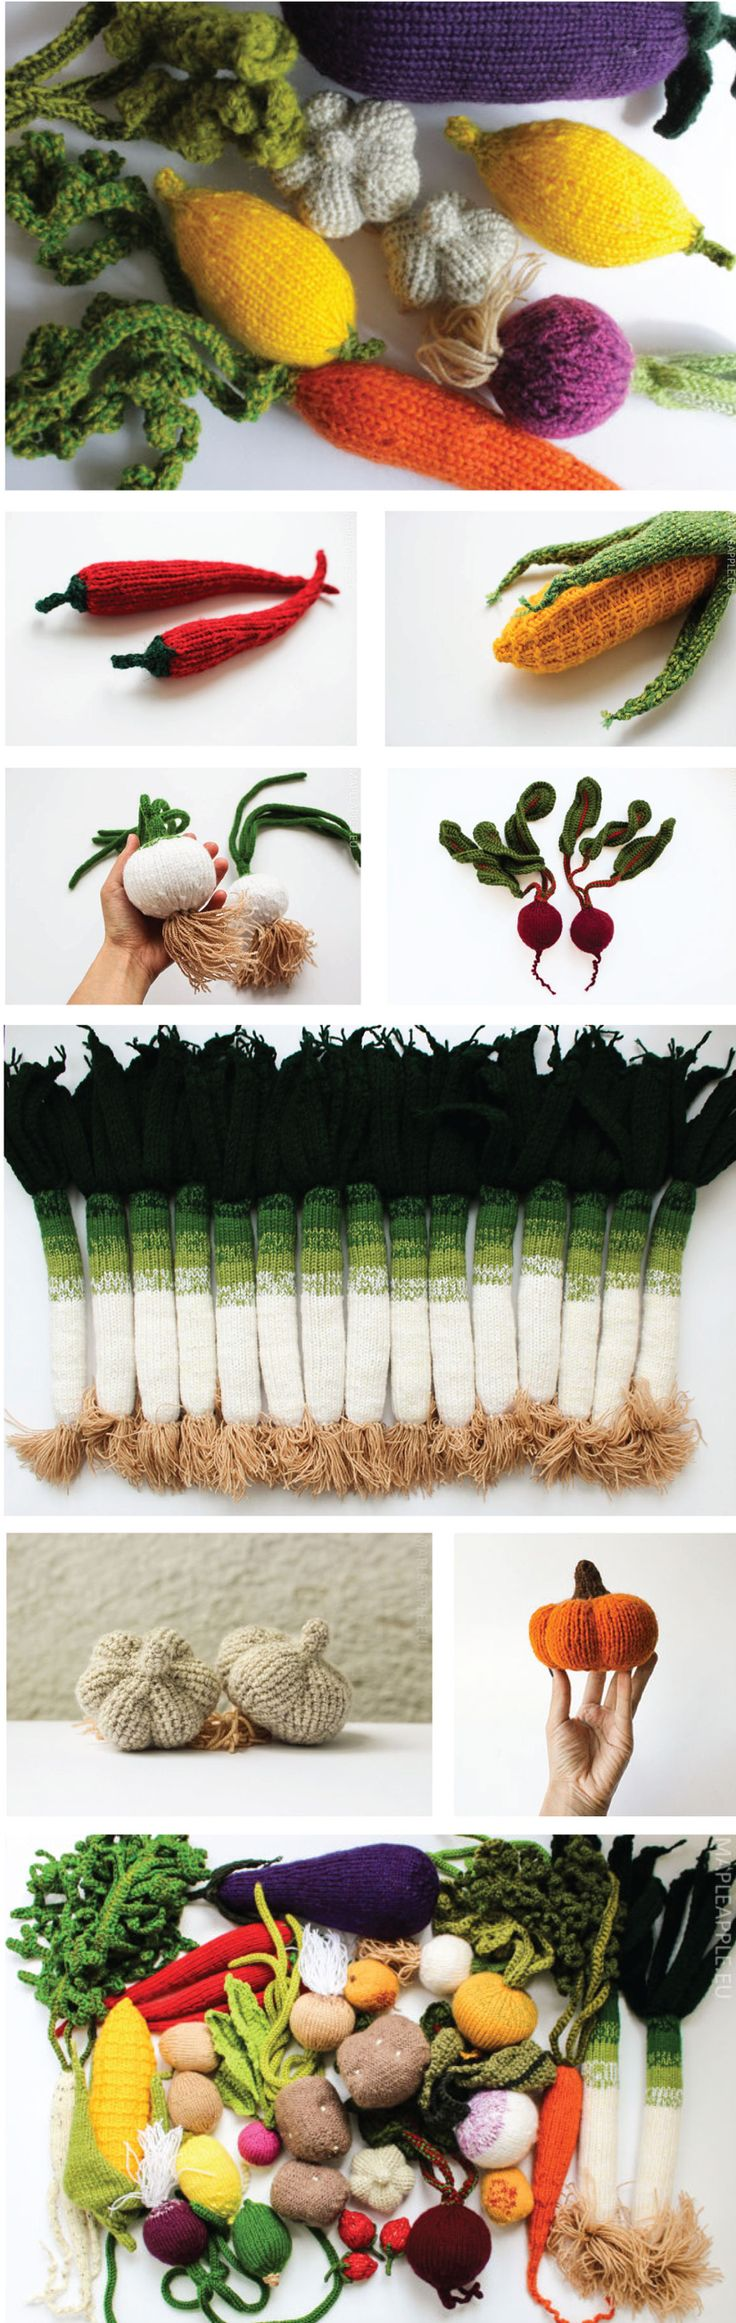 Found these great knitted play veggies on the Etsy shop, Maple Apple. They are the creations of mother (Jelena) and daughter (Anastasija) design team from Riga, Latvia. The beautifully knitted vege…